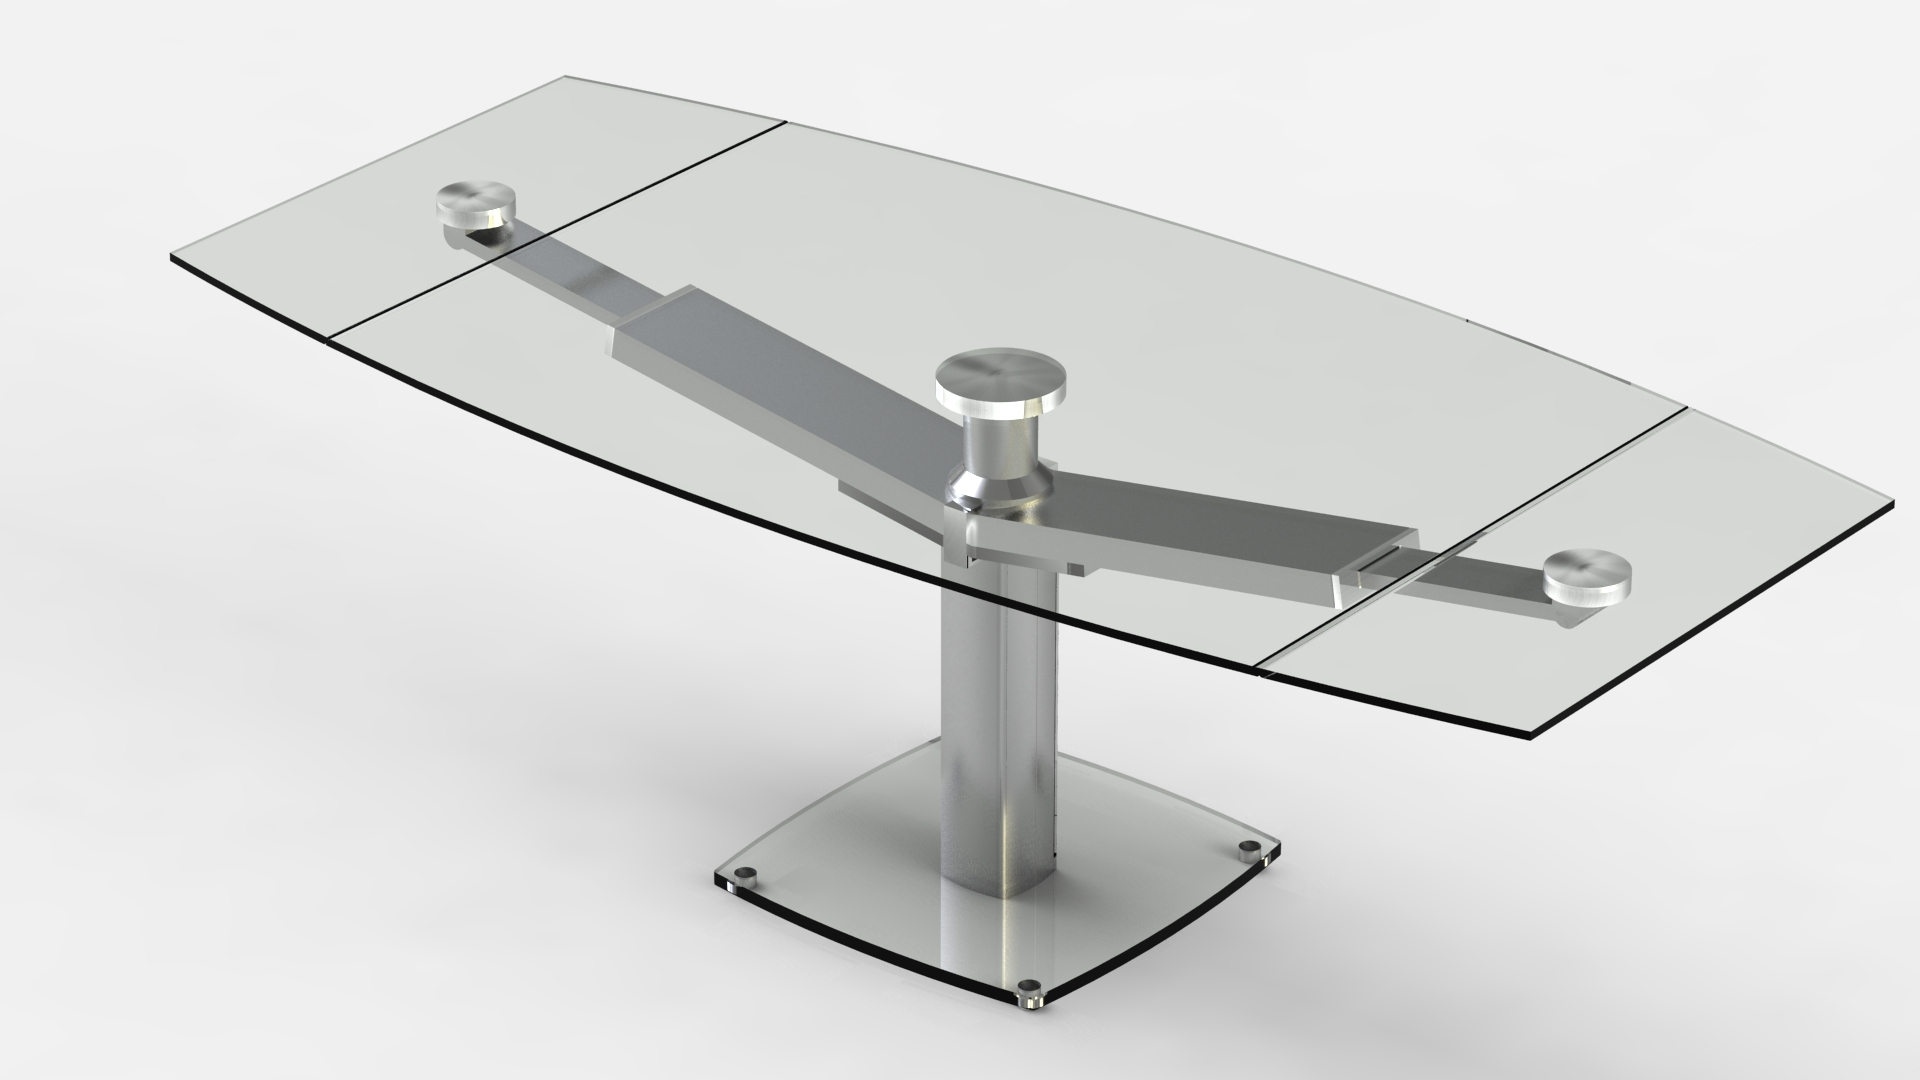 Table manger en verre avec rallonge for Table de repas design